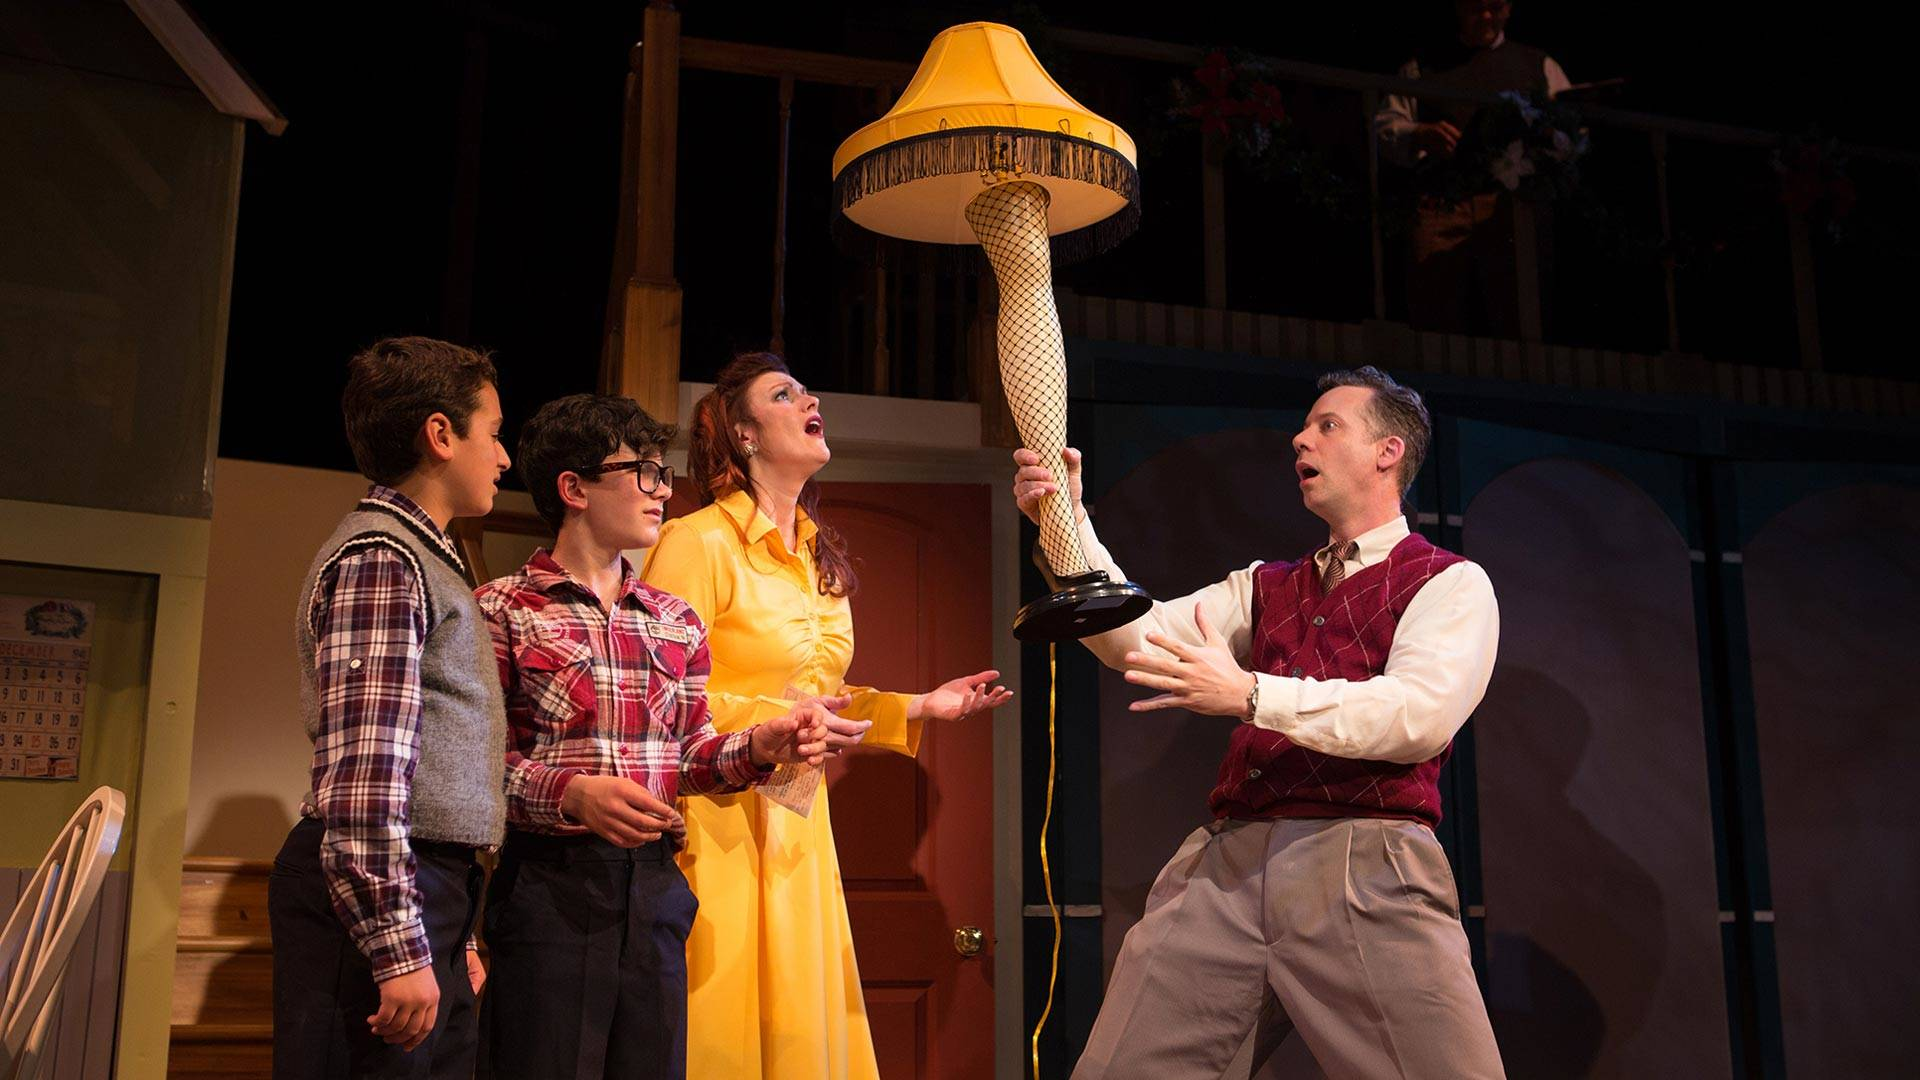 The Old Man (Ryan Drummond, right) unveils his major award as Randy (Jake Miller), Ralphie (Jonah Broscow), and Mother (Abby Haug) express their puzzlement in 'A Christmas Story: The Musical' at SF Playhouse. Jessica Palopoli